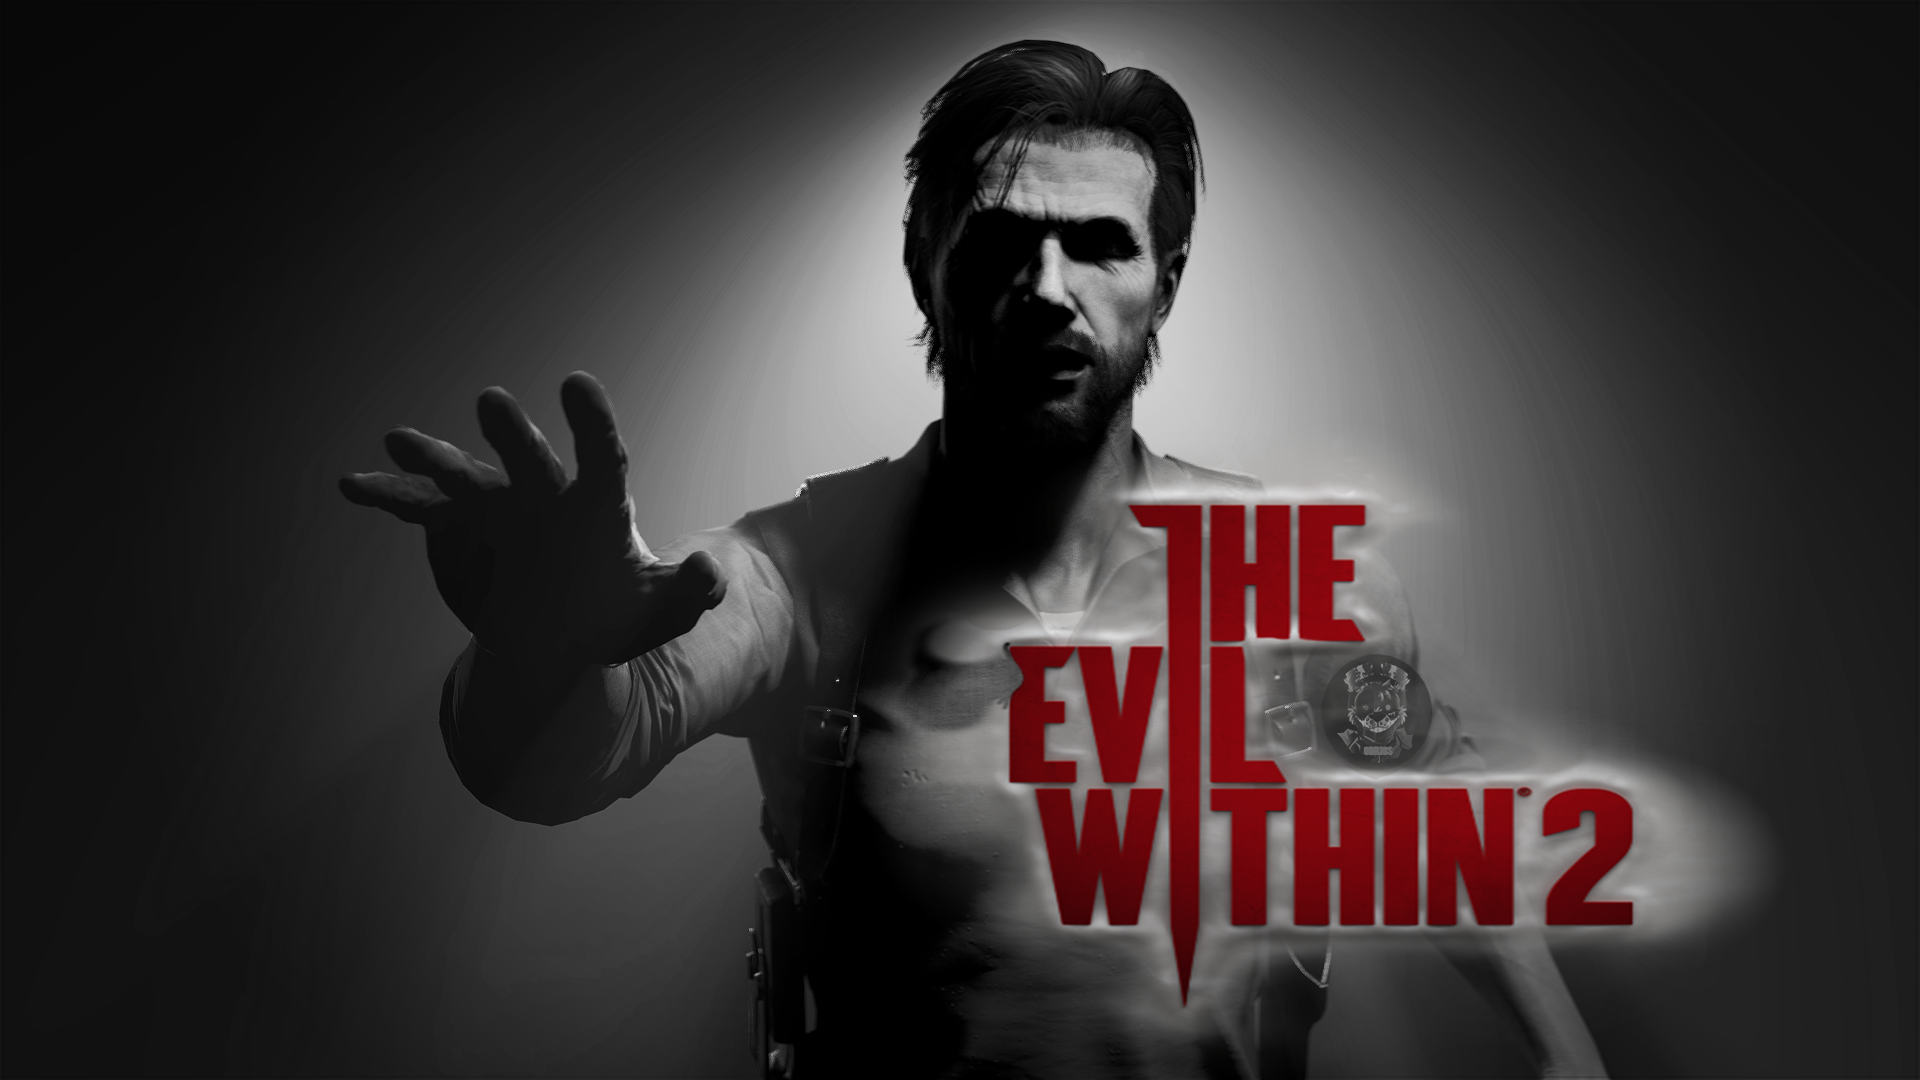 Wallpaper Theodore Harbinger The Evil Within 2 Hd: The Evil Within 2 By Odrios On DeviantArt